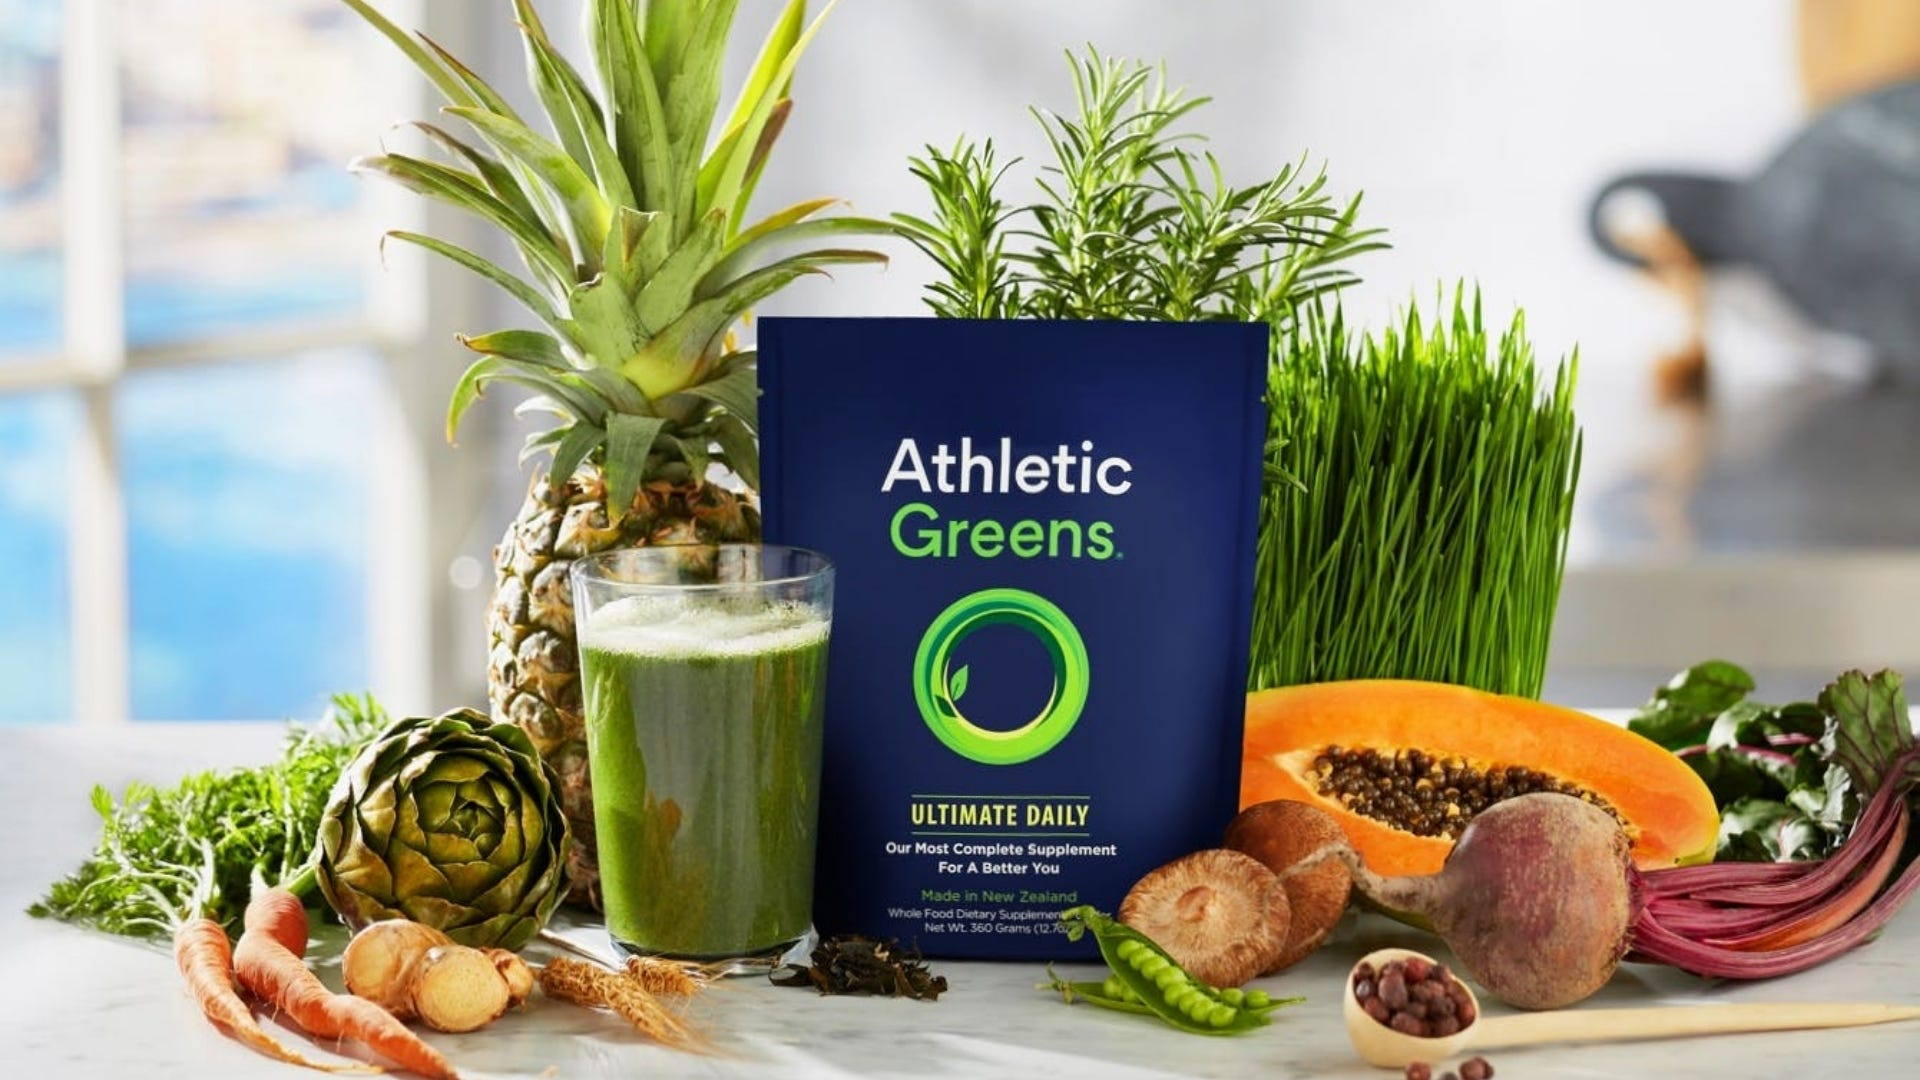 A bag of Athletic Greens Ultimate Daily surrounded by fruits and vegetables.